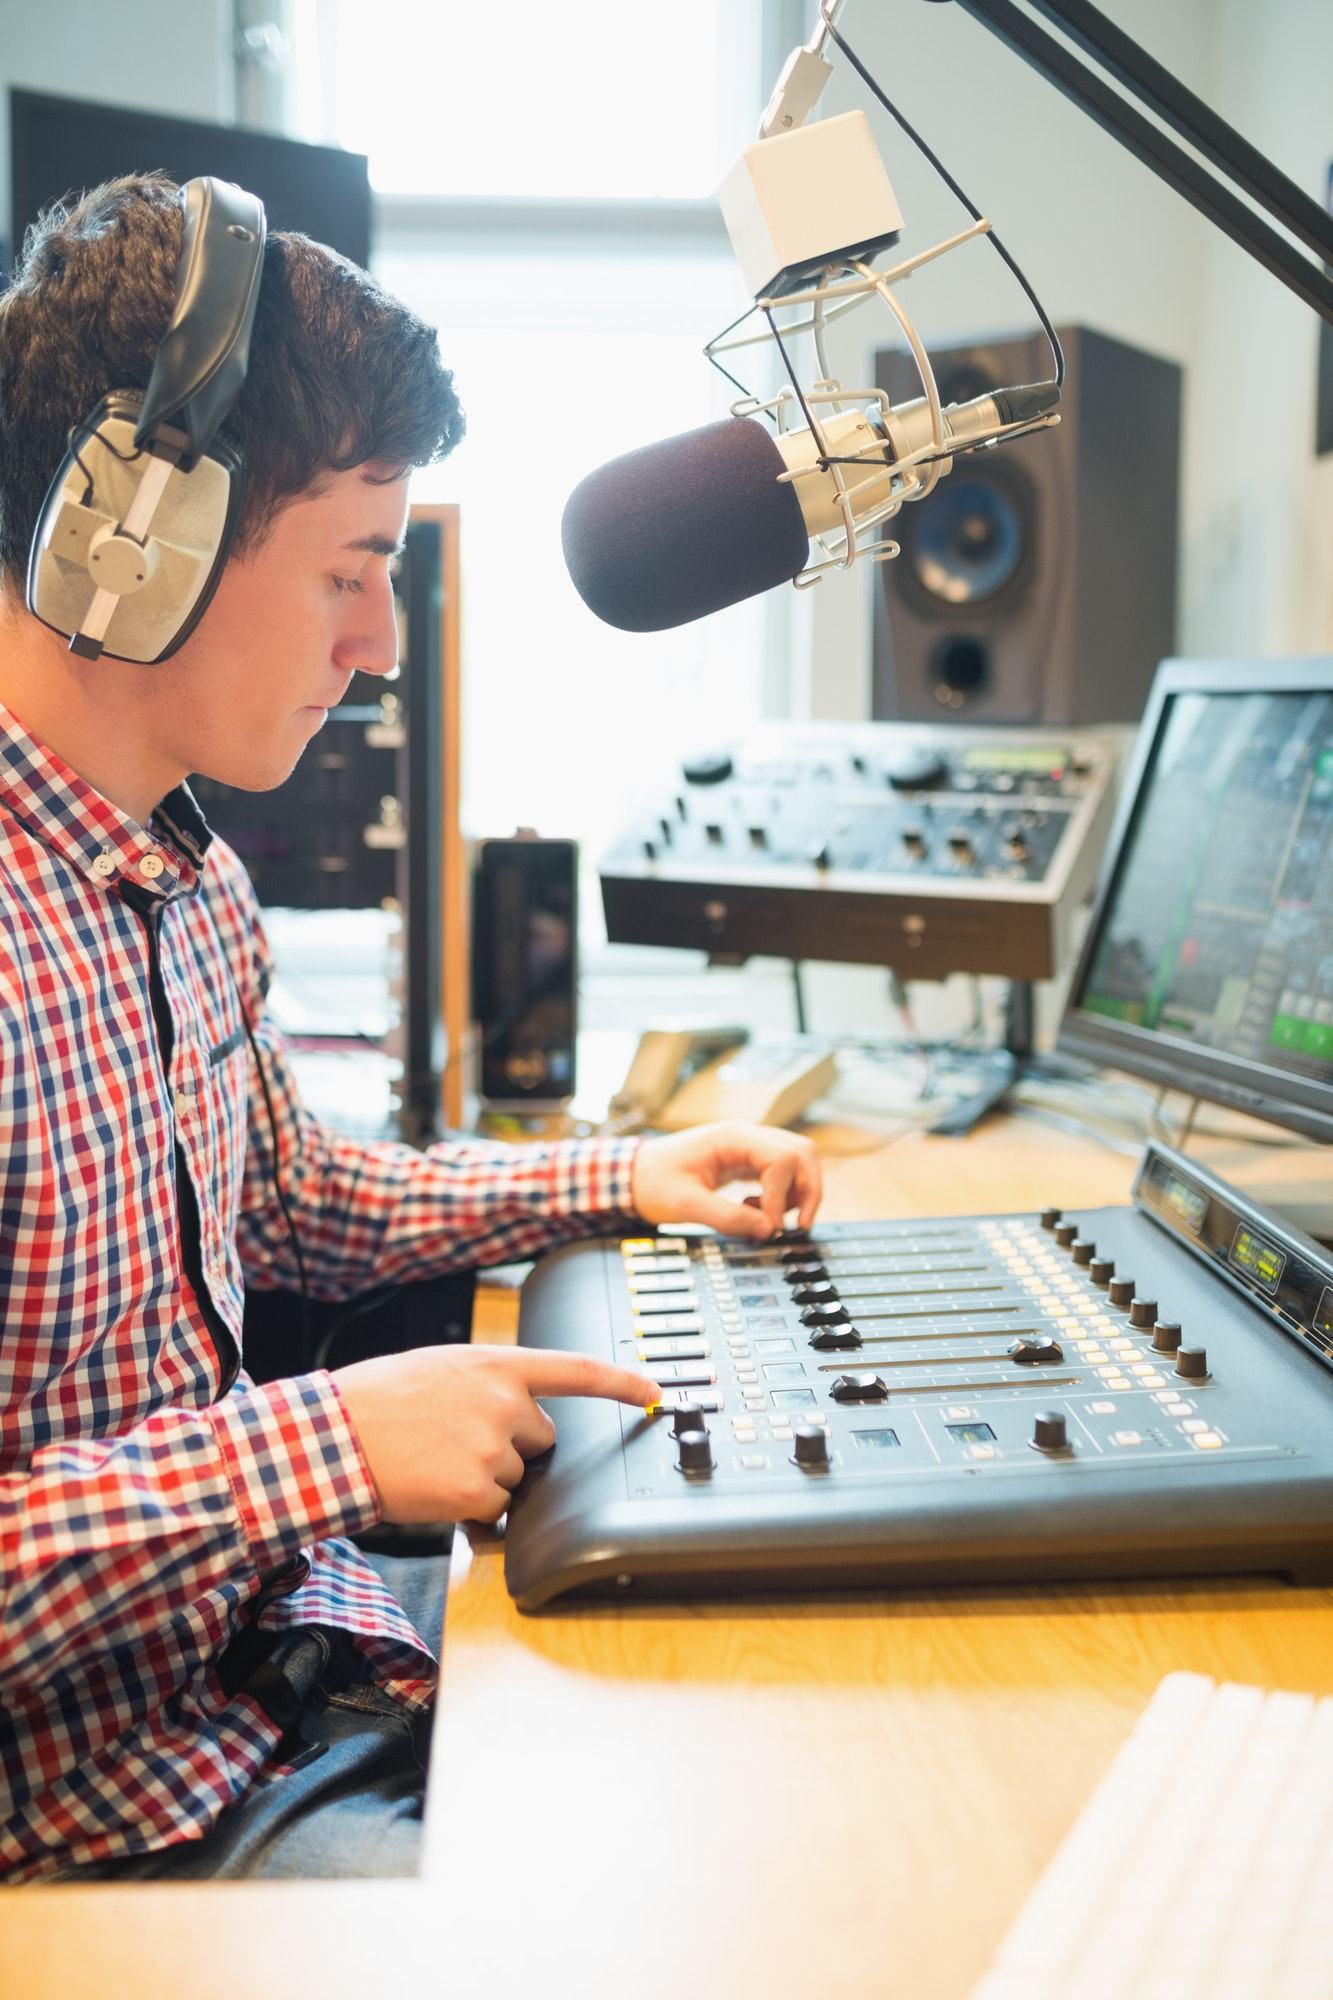 radio-host-wearing-headphones-operating-sound-mixer-on-table-in-studio